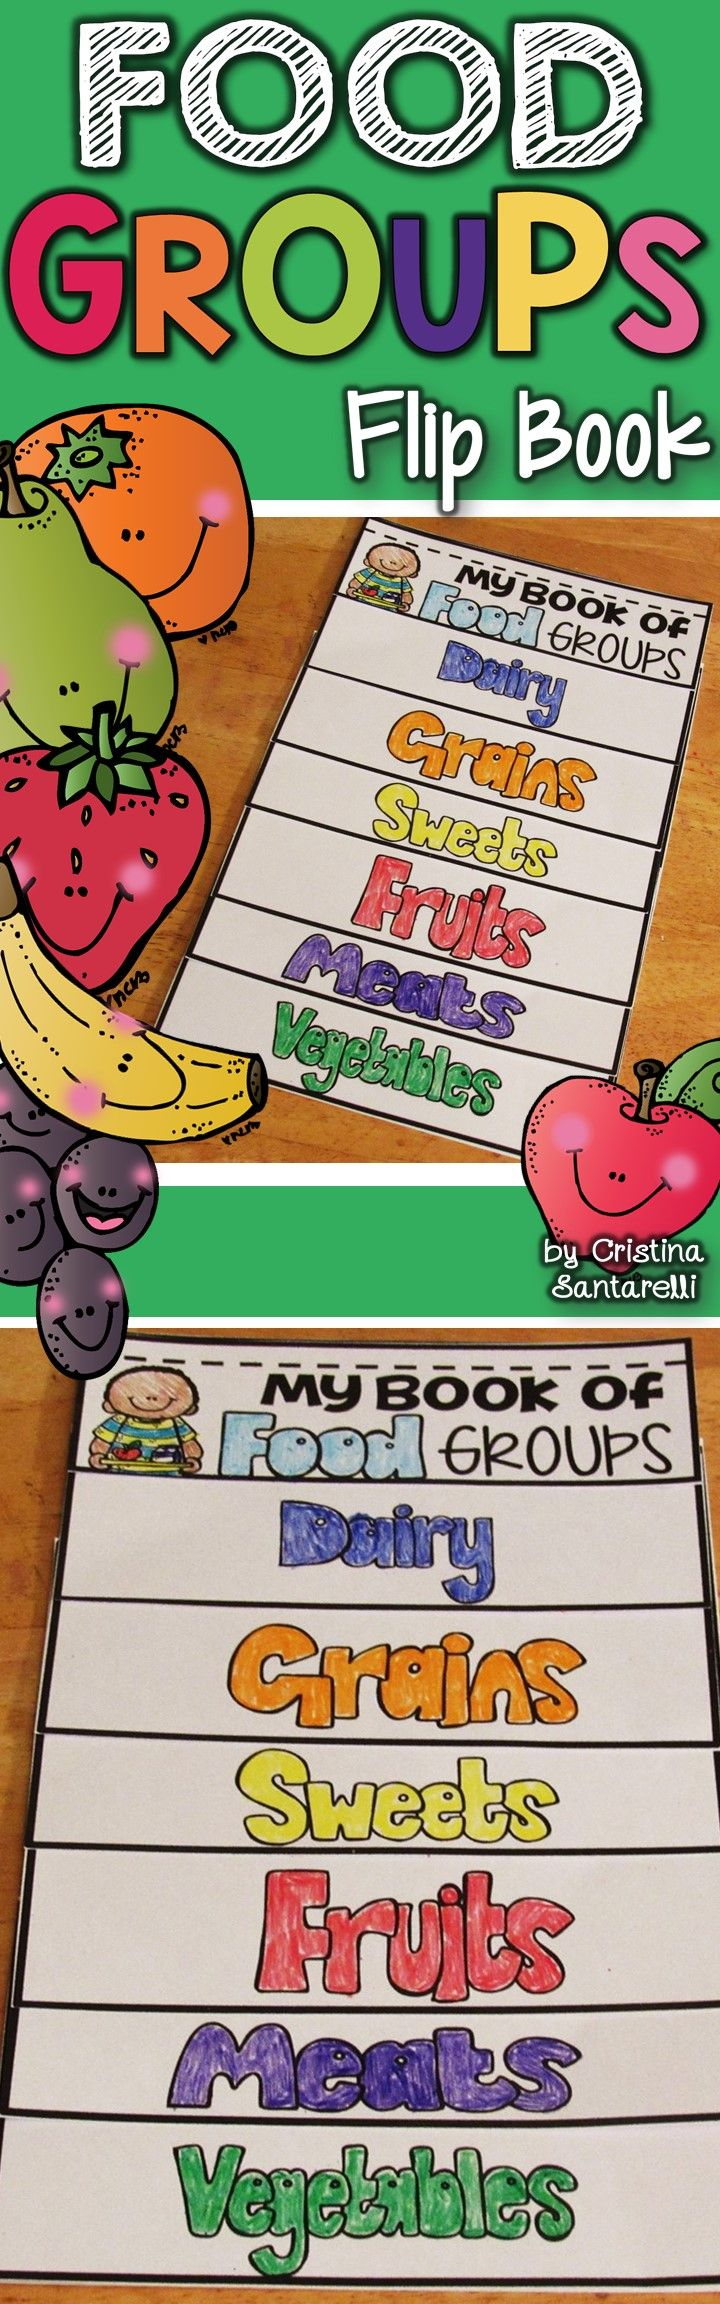 Food groups flip book group meals books the chocolate